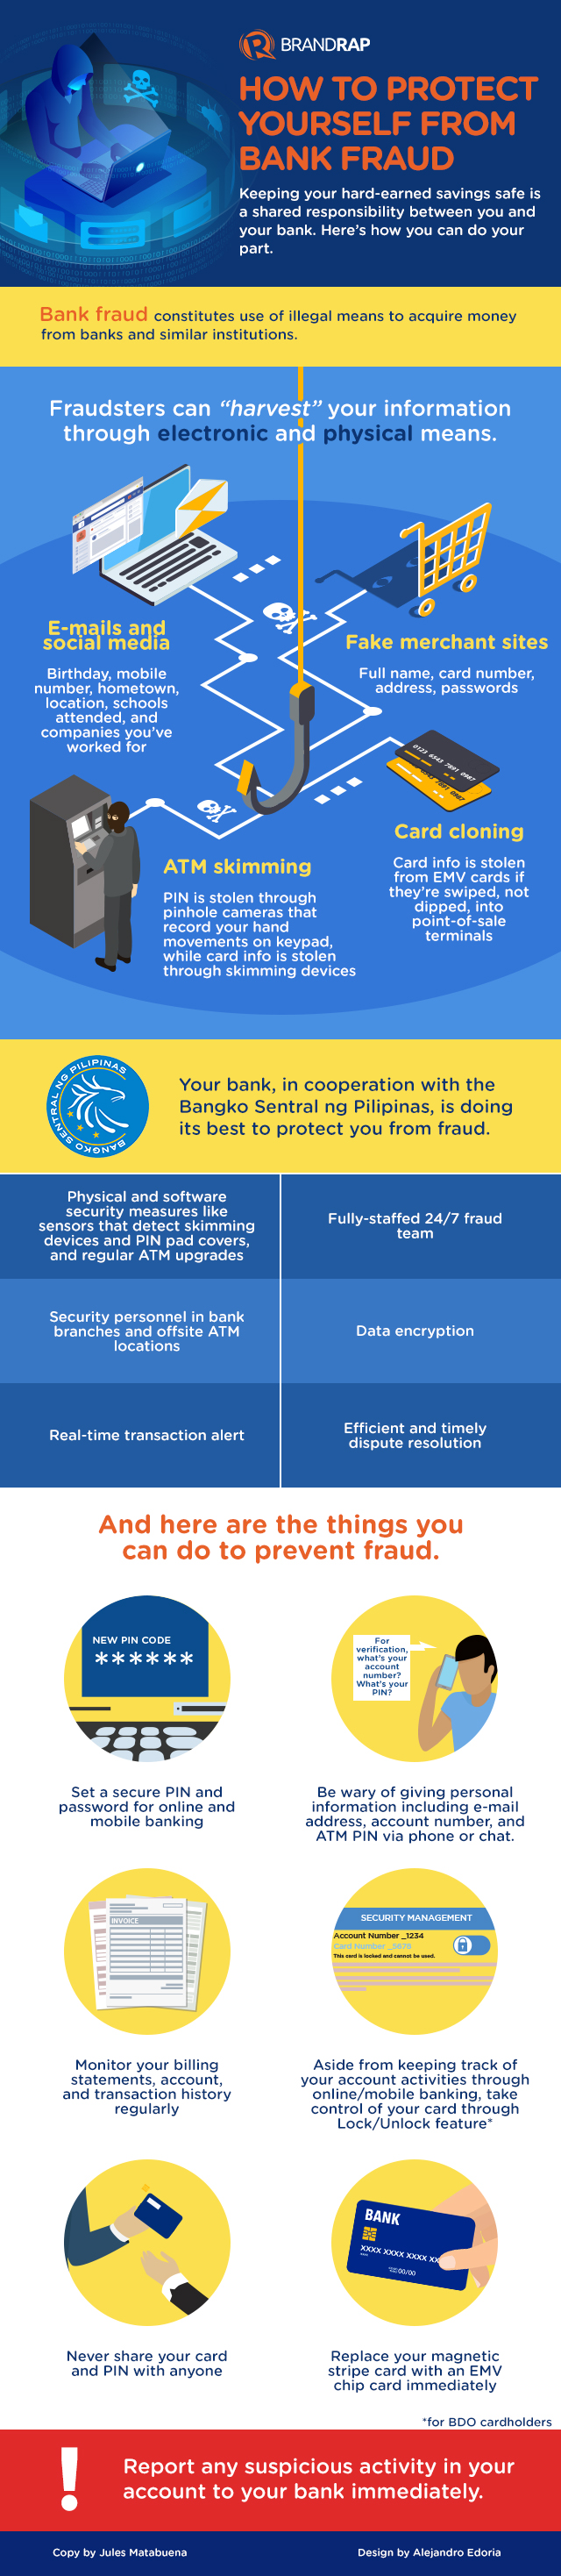 Infographic How To Protect Yourself From Bank Fraud